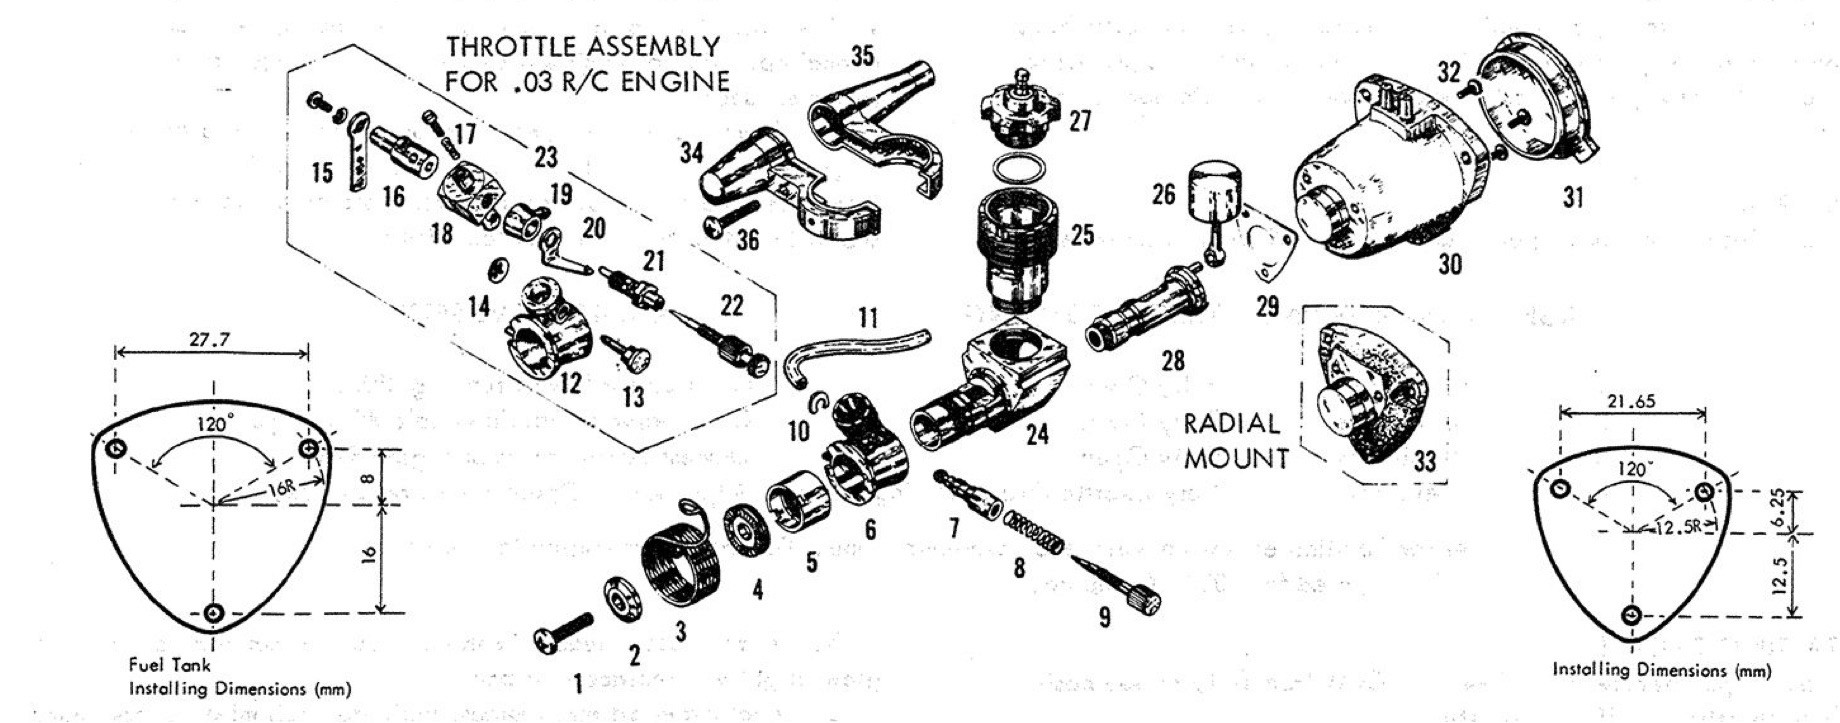 Glow Plug for the G-Mark 03 - Page 3 Mounti10